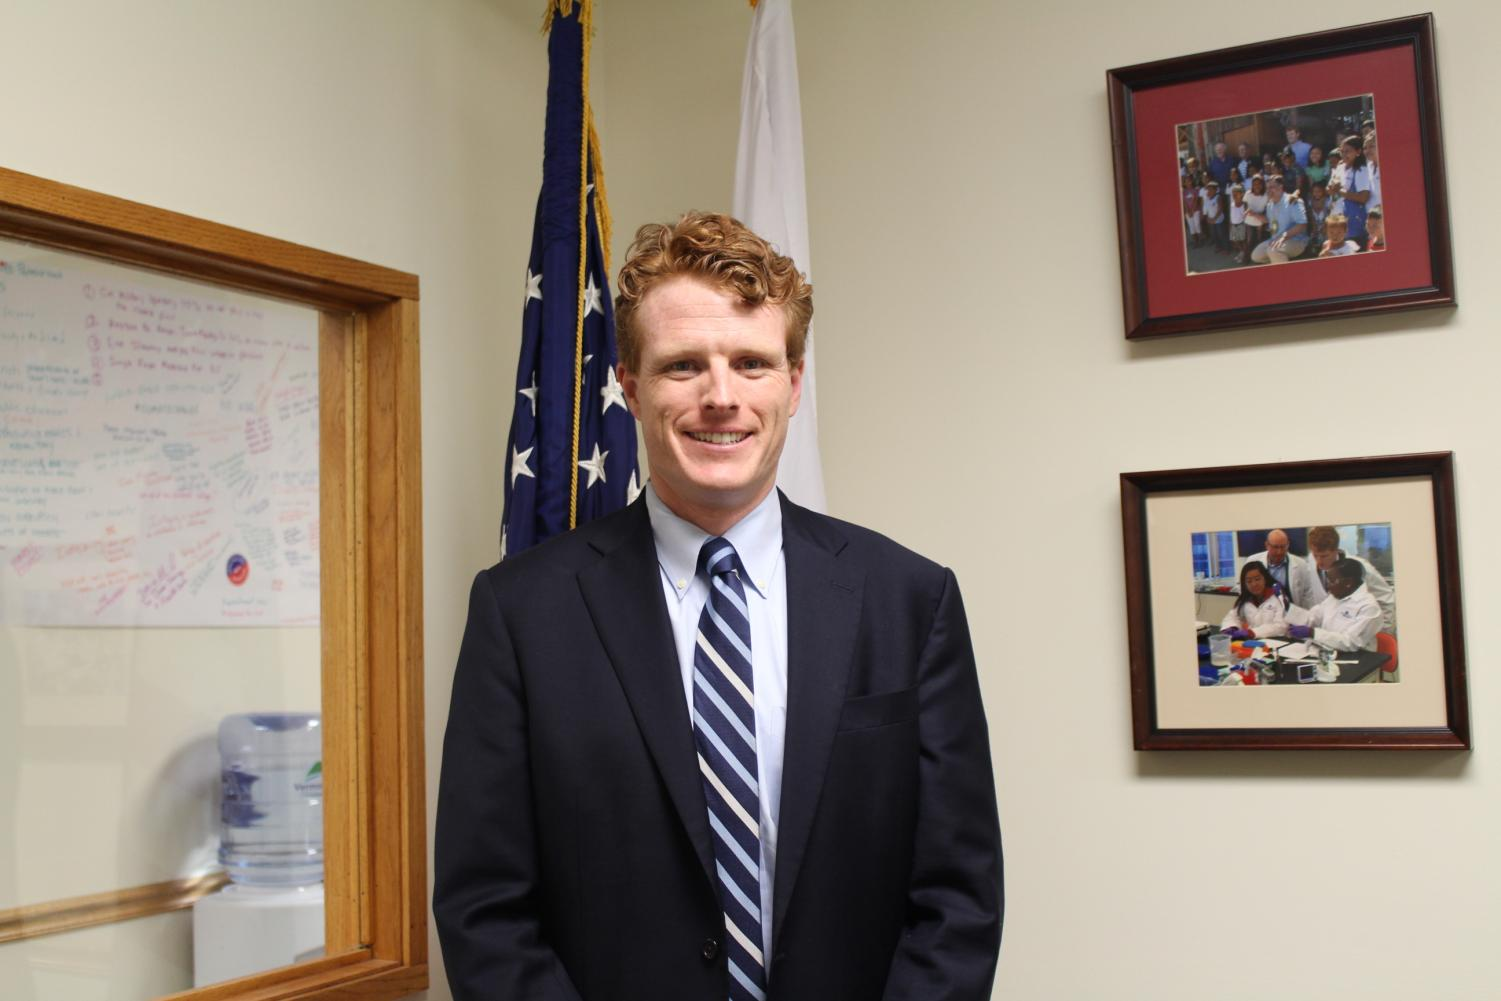 Joseph P. Kennedy III is the  congressman for the 4th district of Massachusetts.